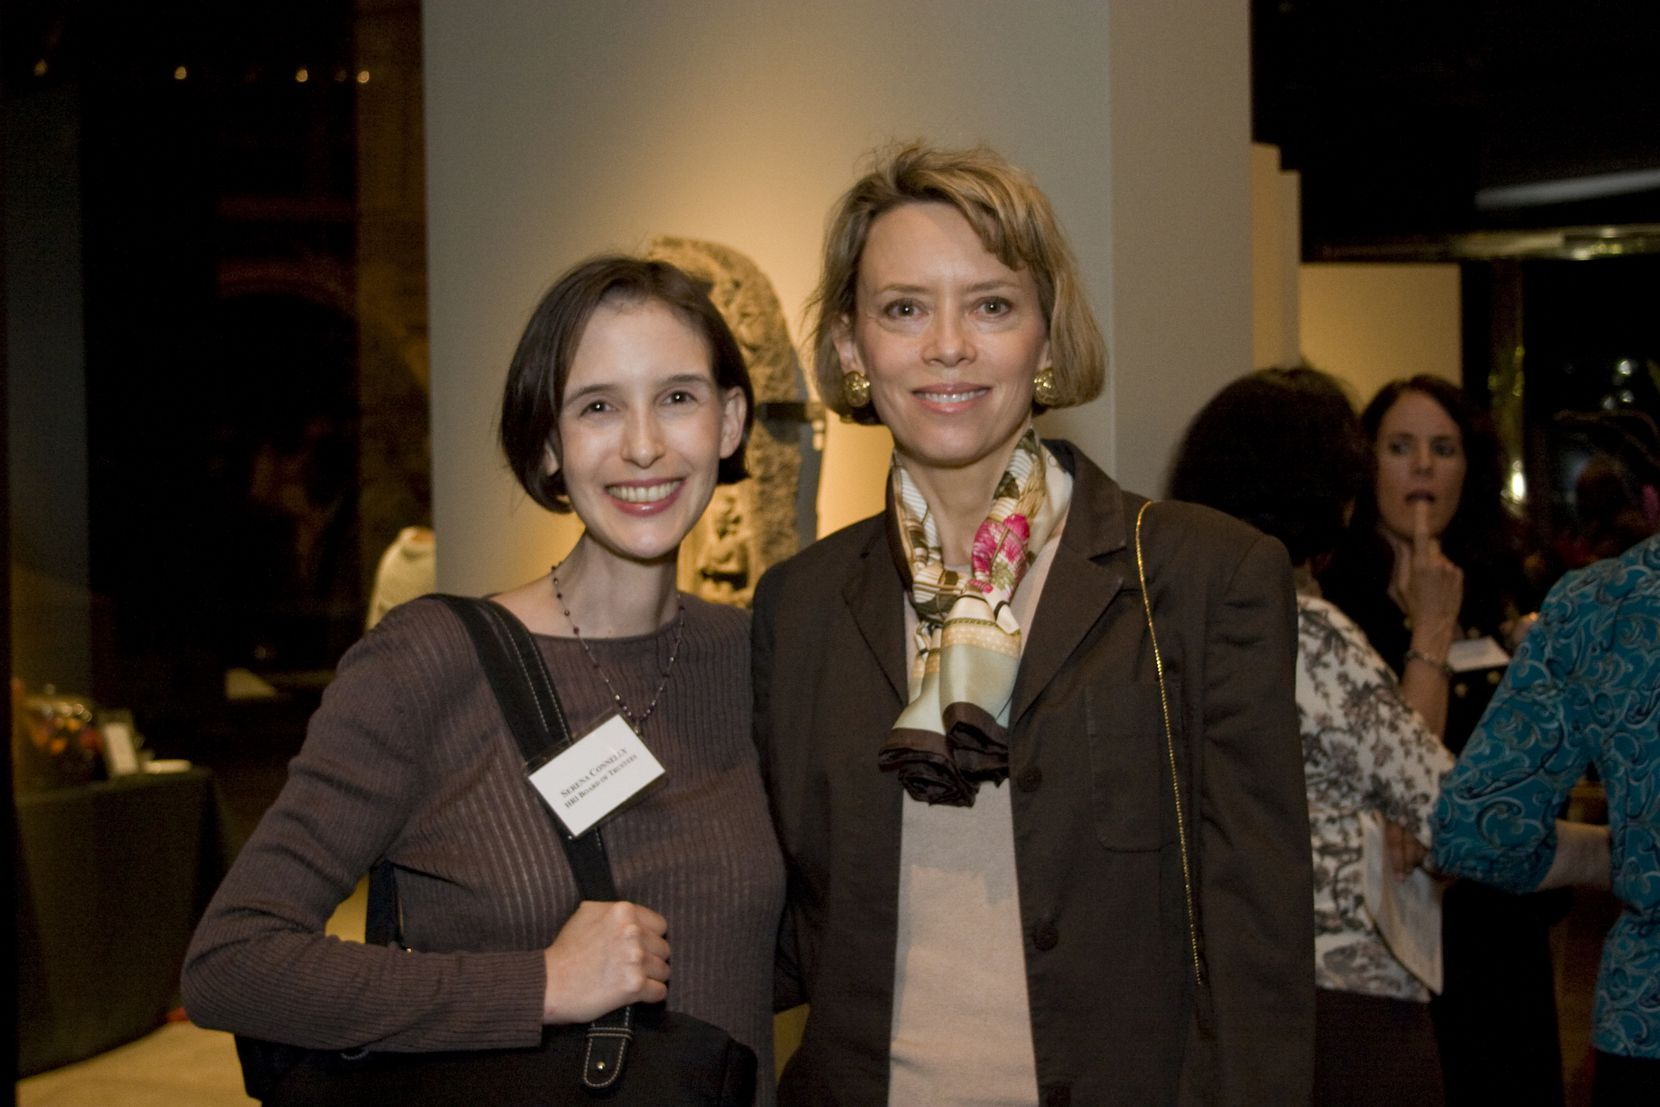 Serena Simmons Connelly (left) and her sister Lisa Simmons. Until her death, Serena helped Lisa in leading the Harold Simmons Foundation, which has funded institutions and nonprofits across North Texas.